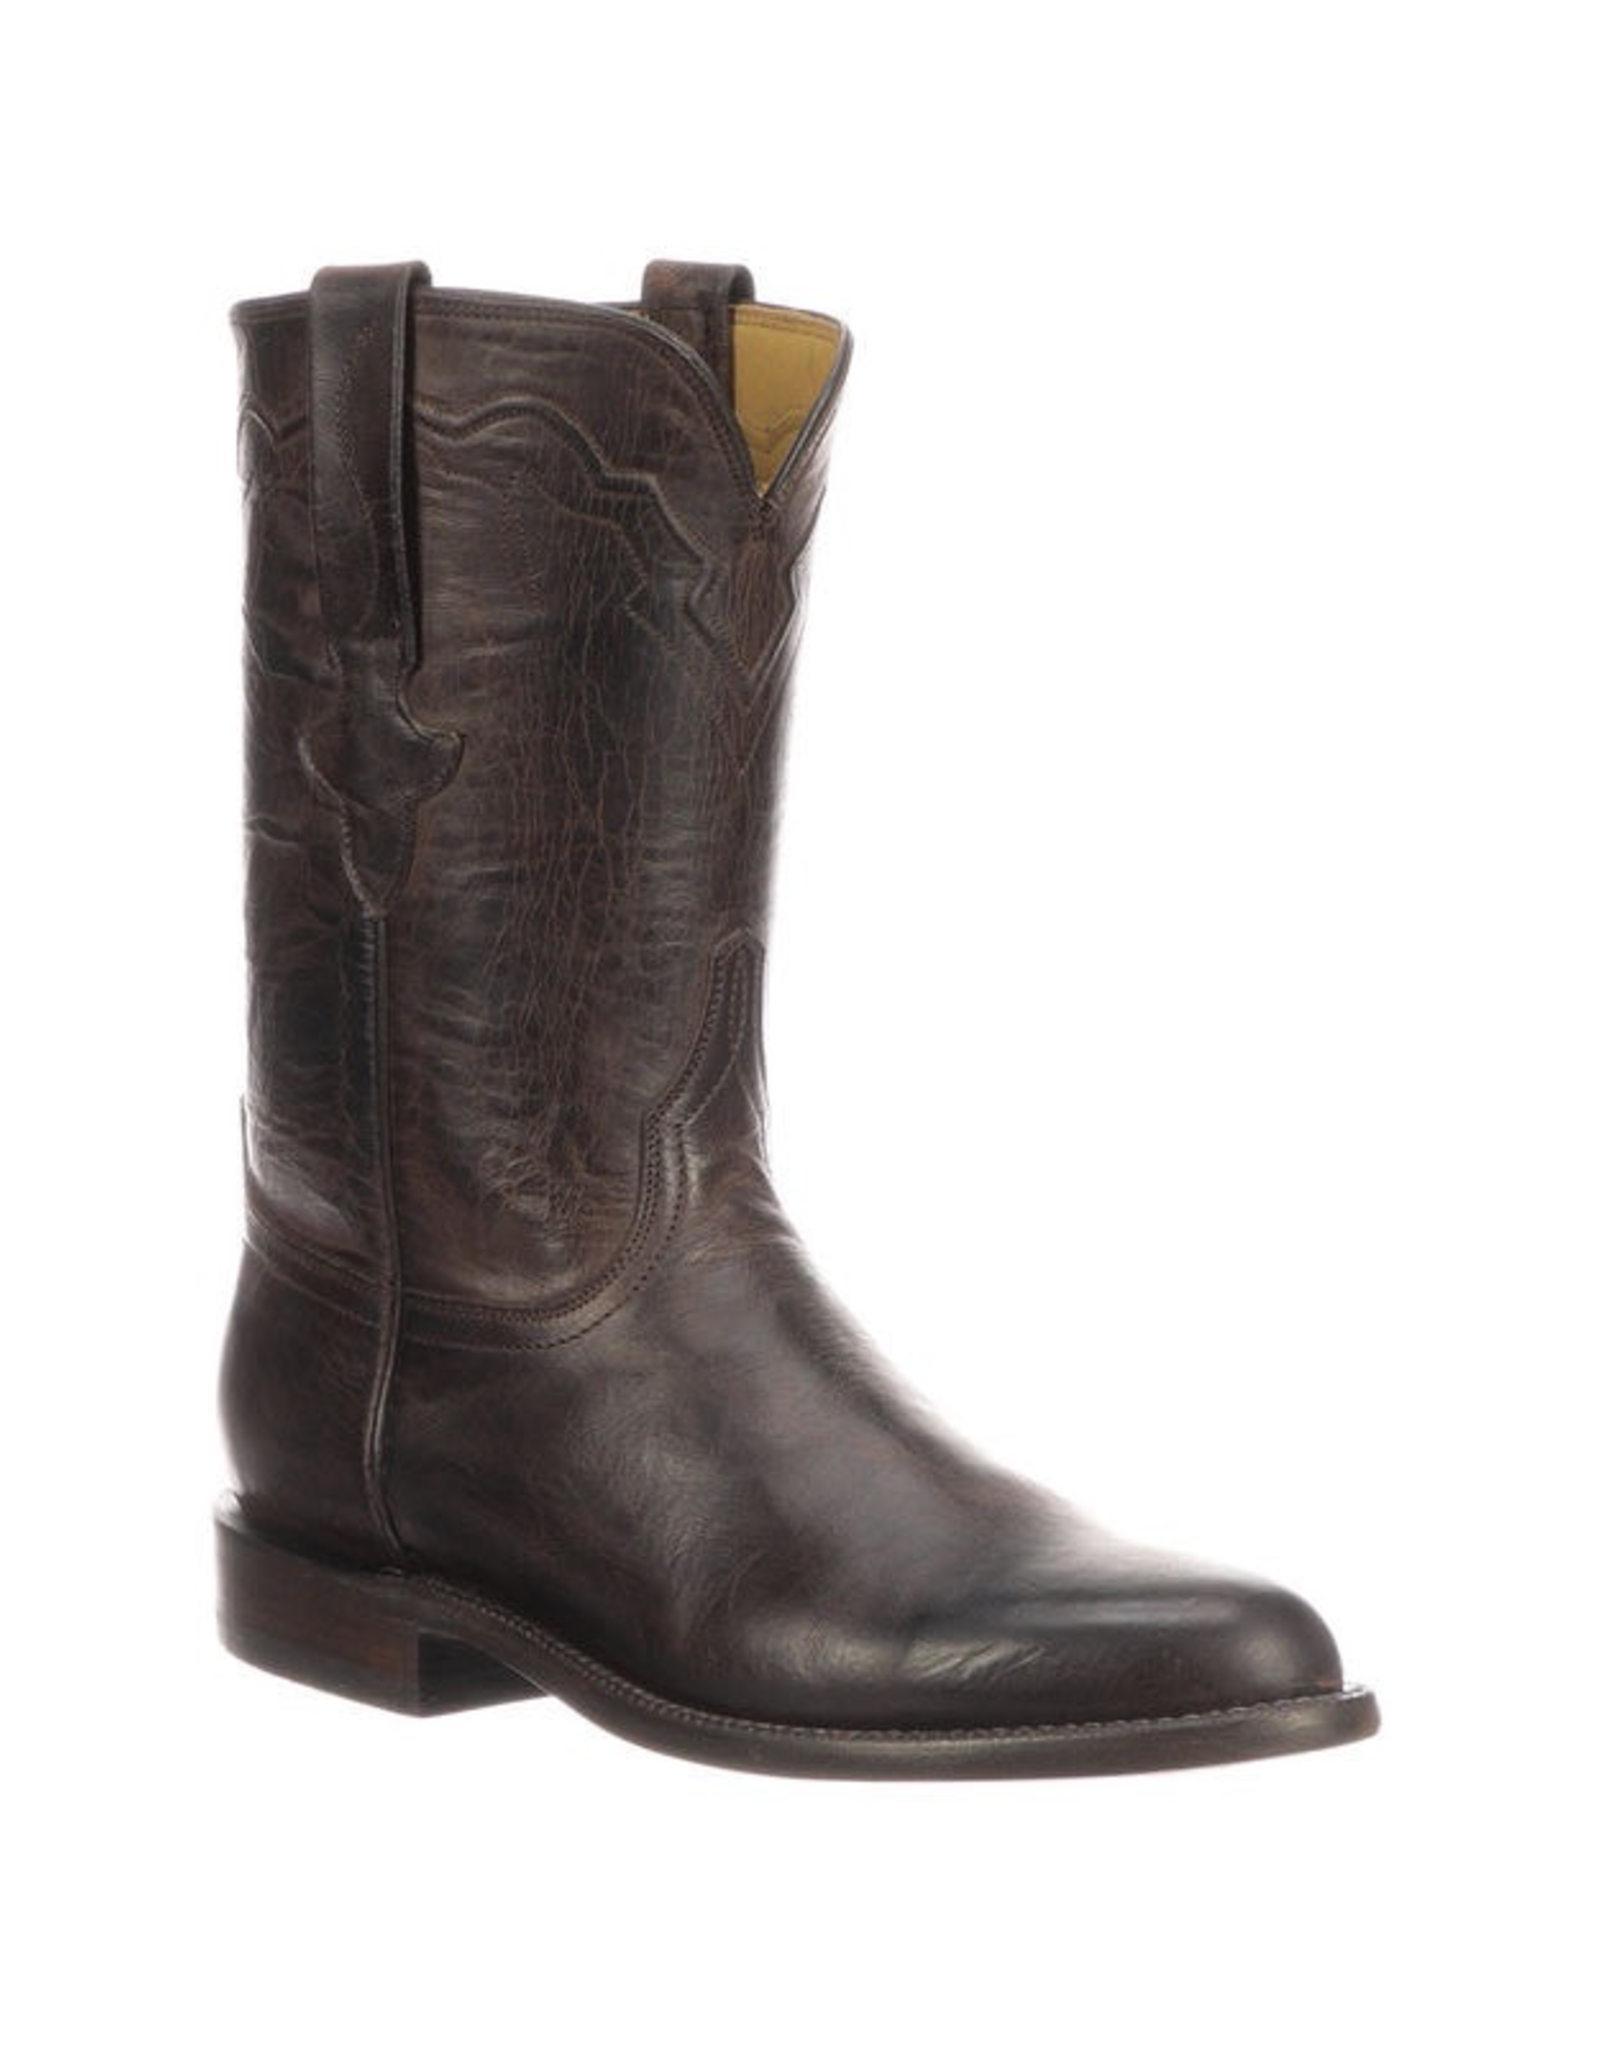 Boots-Men Lucchese GY3512.RR Tanner Chocolate Mad Dog Goat